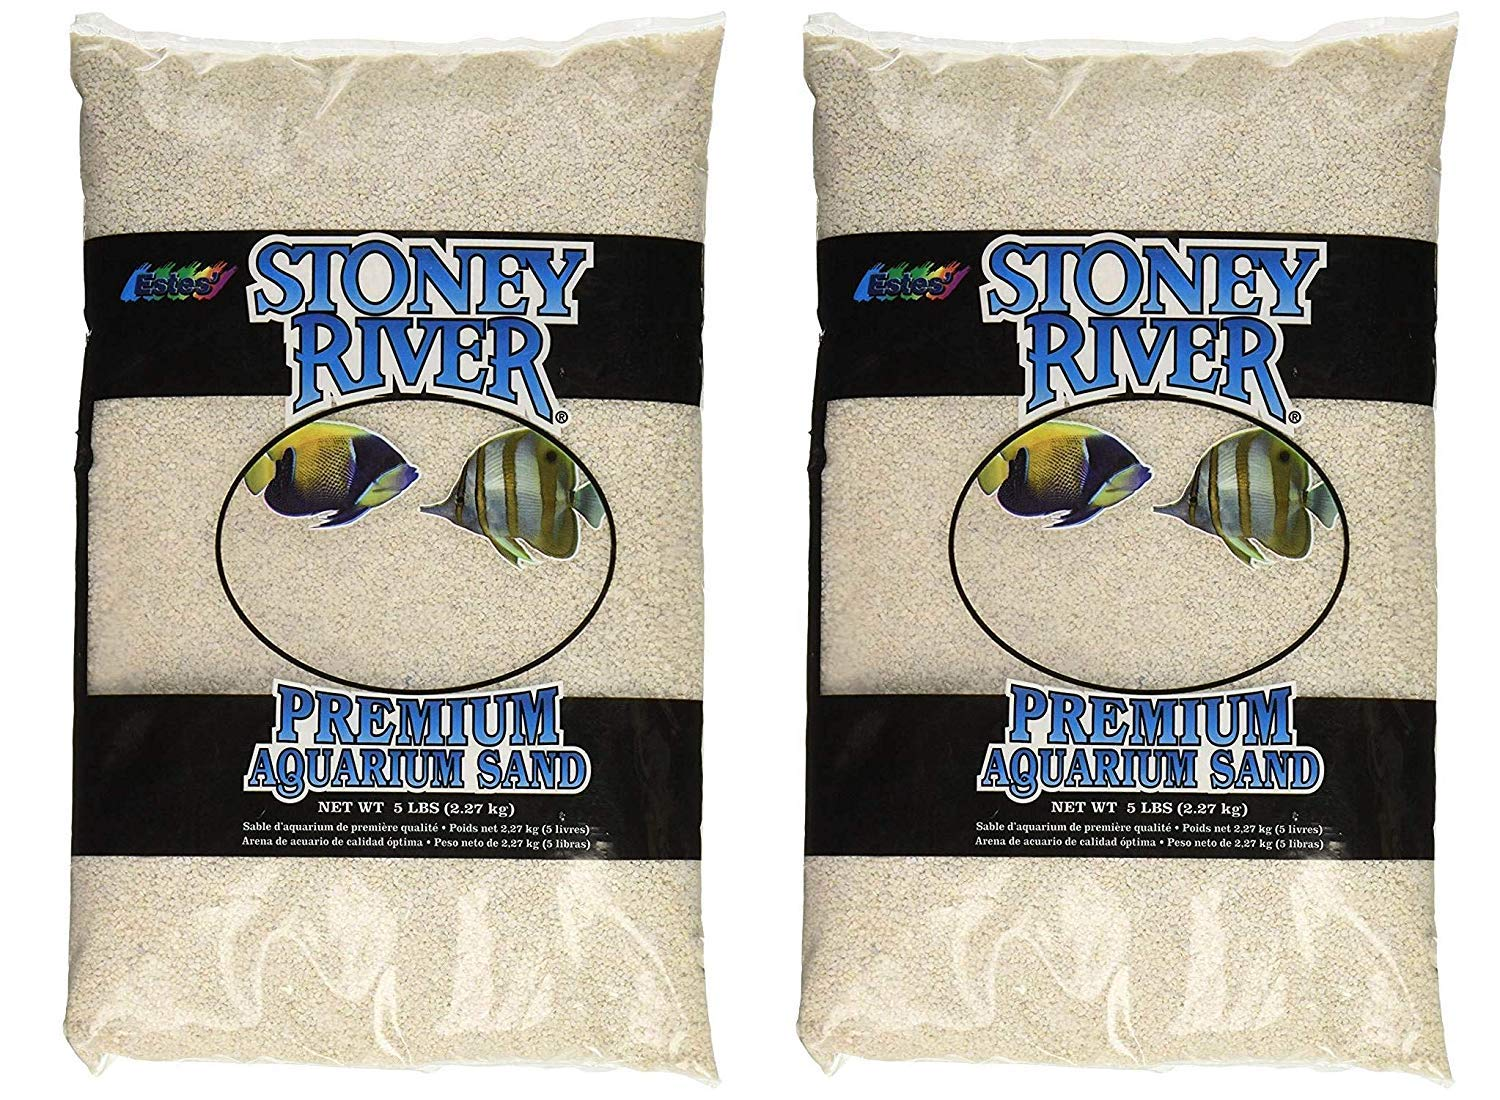 Stoney River White Aquatic Sand Freshwater and Marine Aquariums, 5-Pound Bag (Тwo Рack) by Stoney River